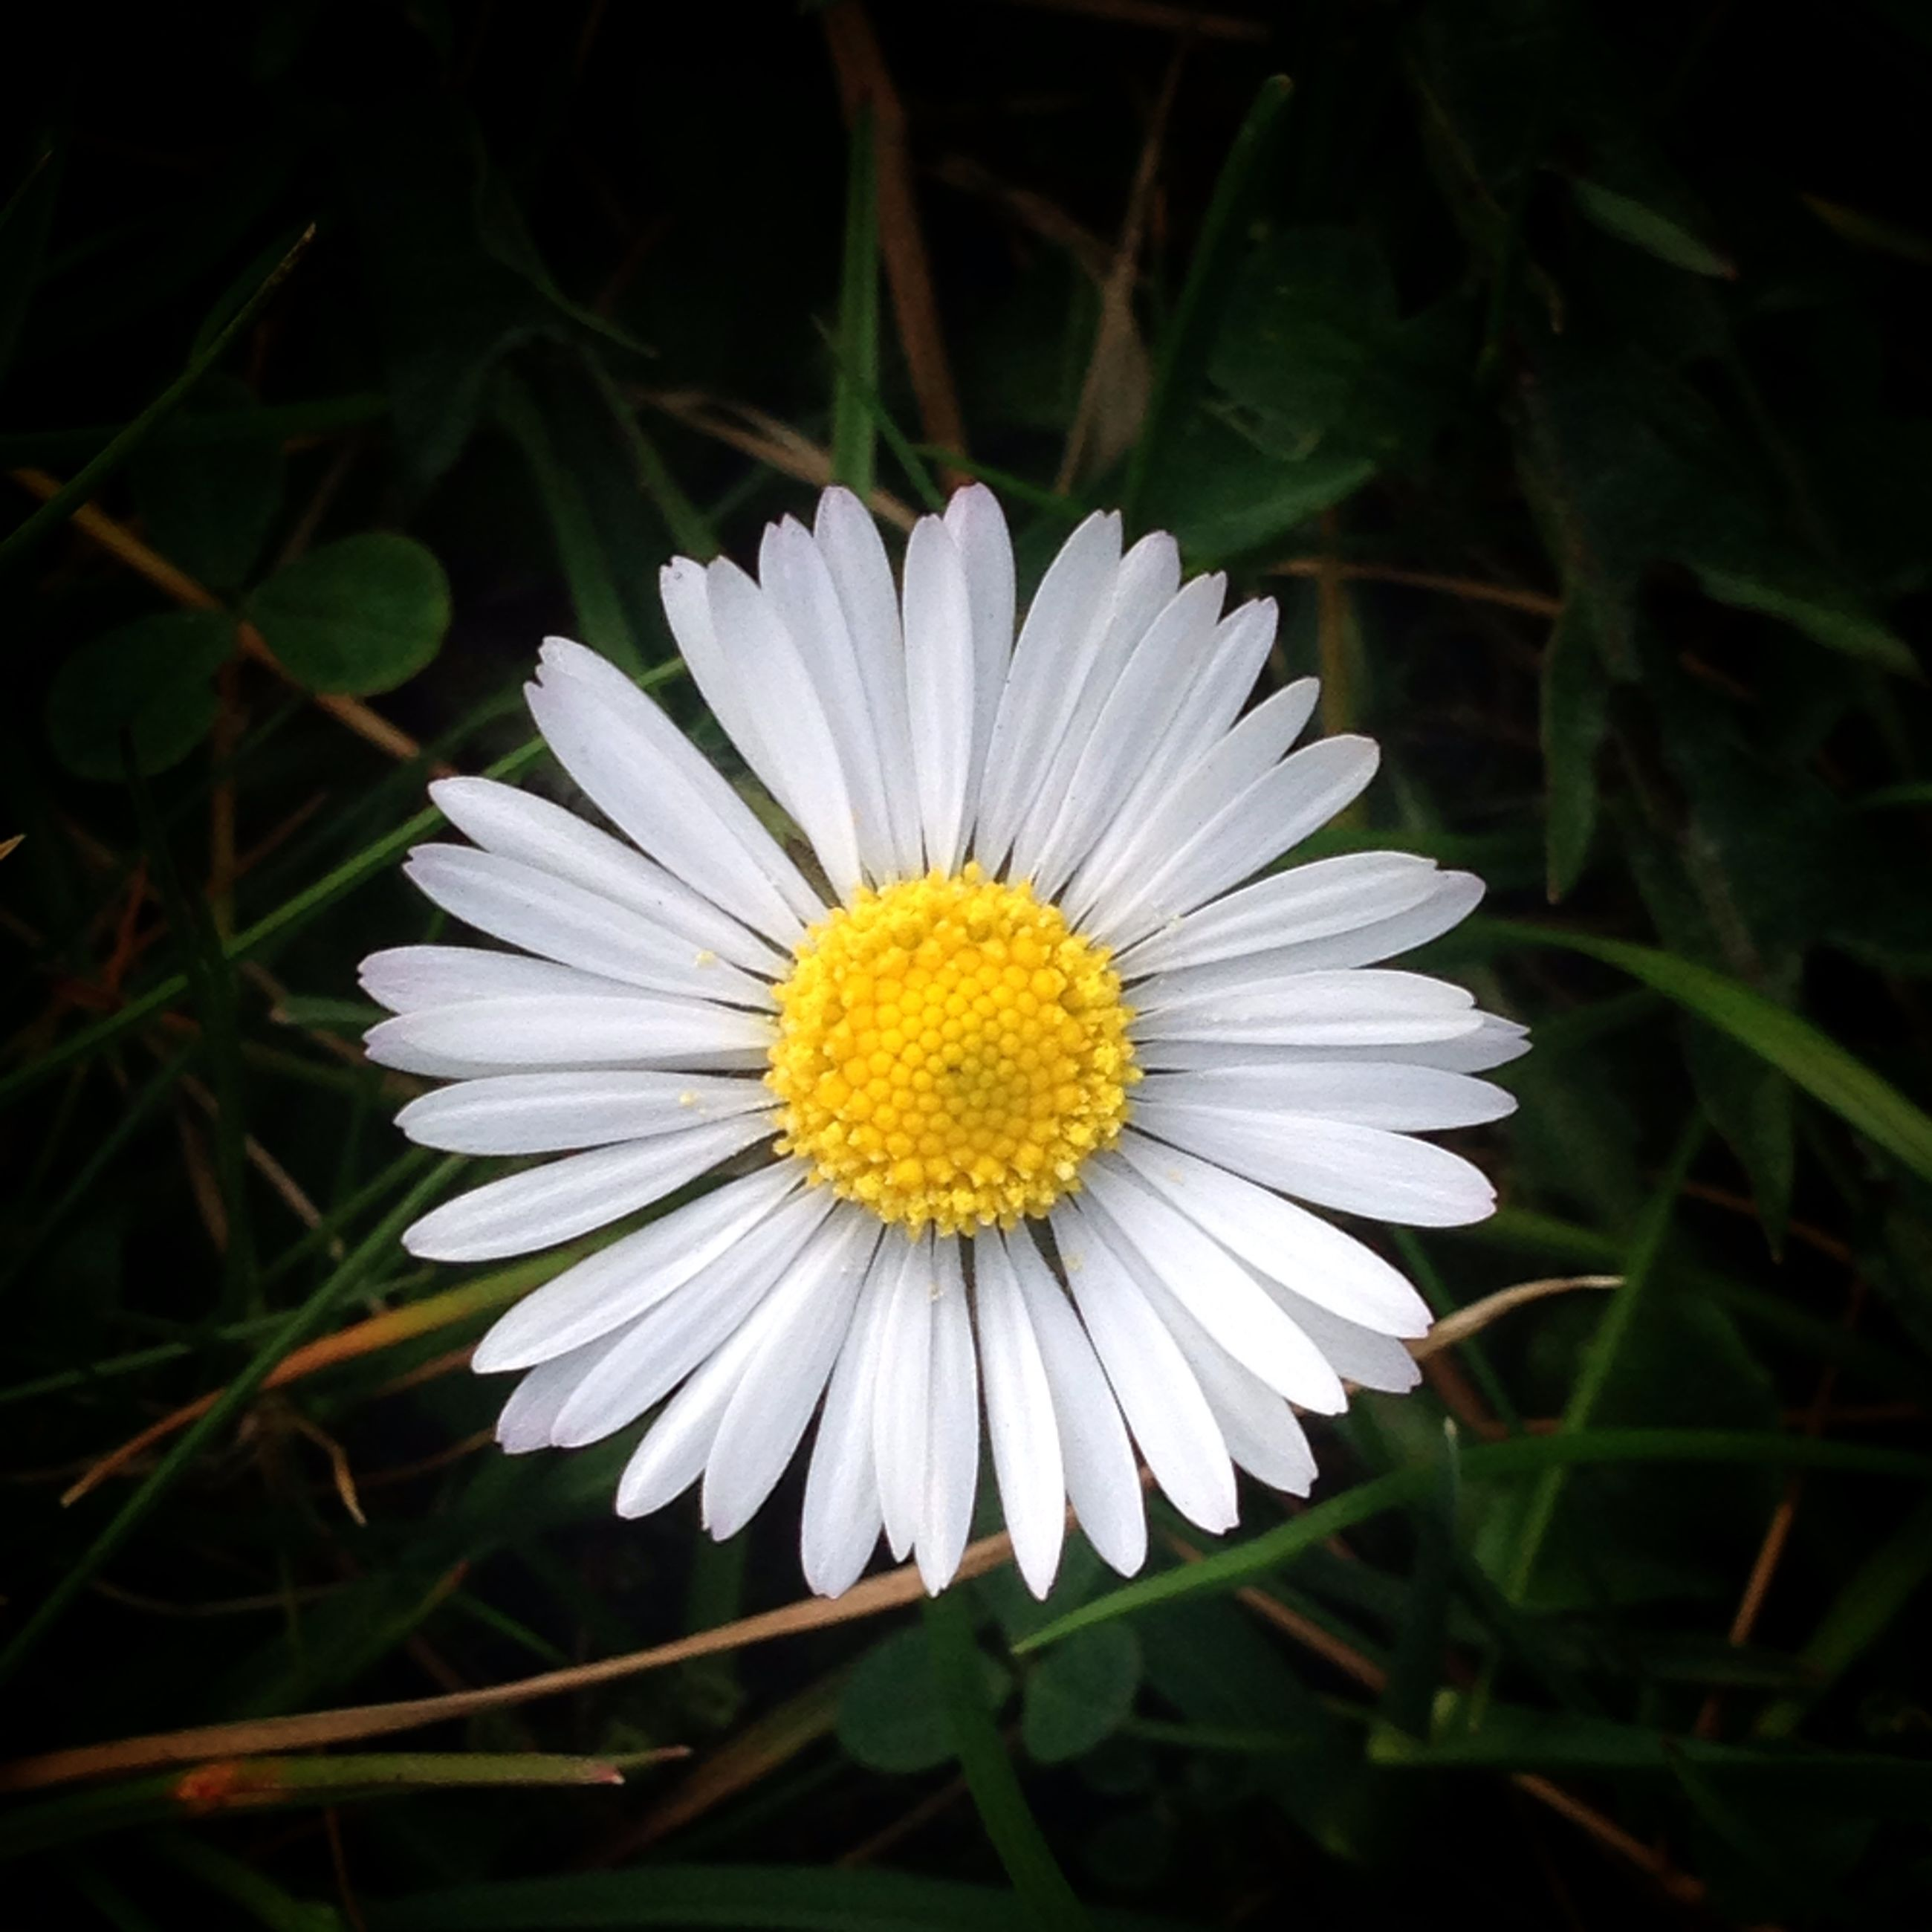 flower, petal, flower head, freshness, fragility, white color, daisy, growth, pollen, blooming, single flower, beauty in nature, close-up, plant, nature, yellow, focus on foreground, field, white, in bloom